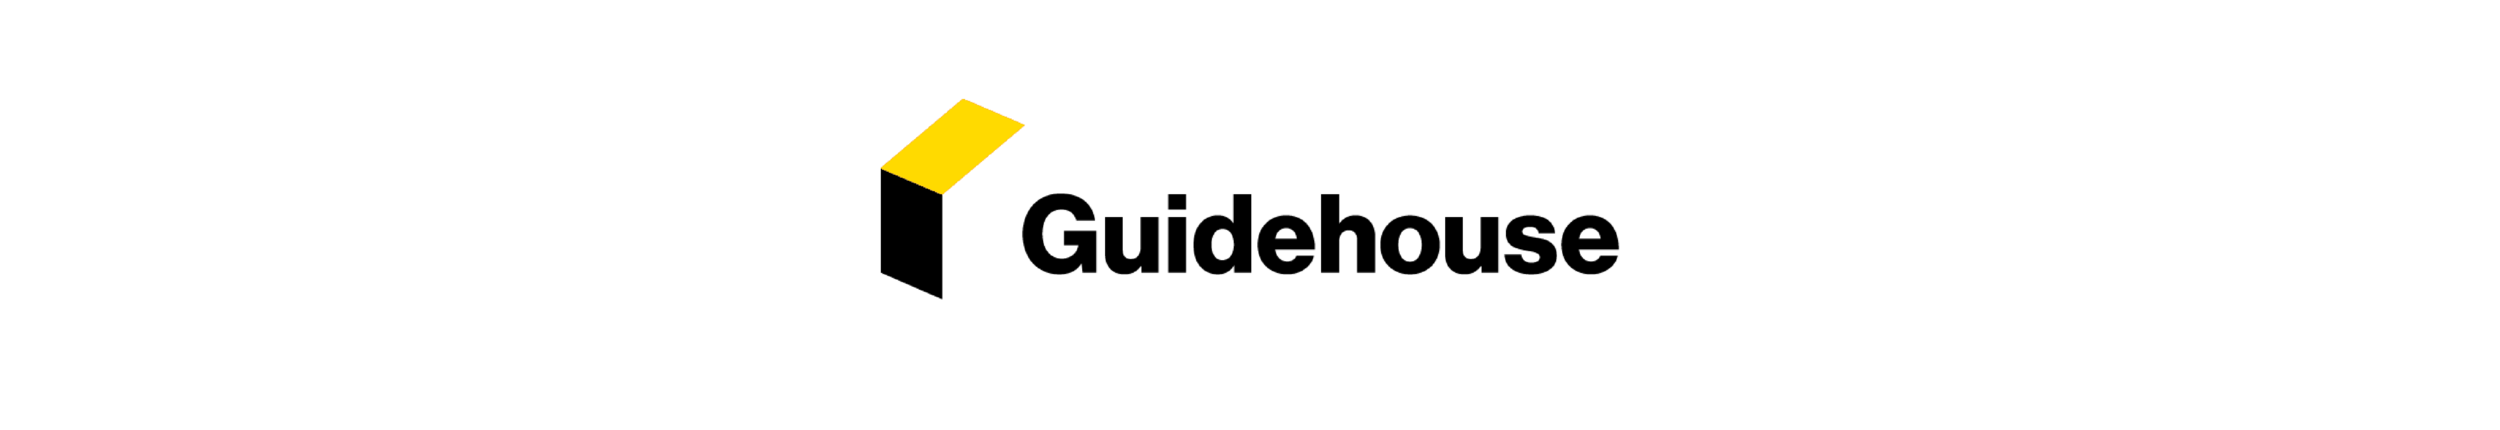 Guidehouse_Speaker-Sponsor-Reception copy.png